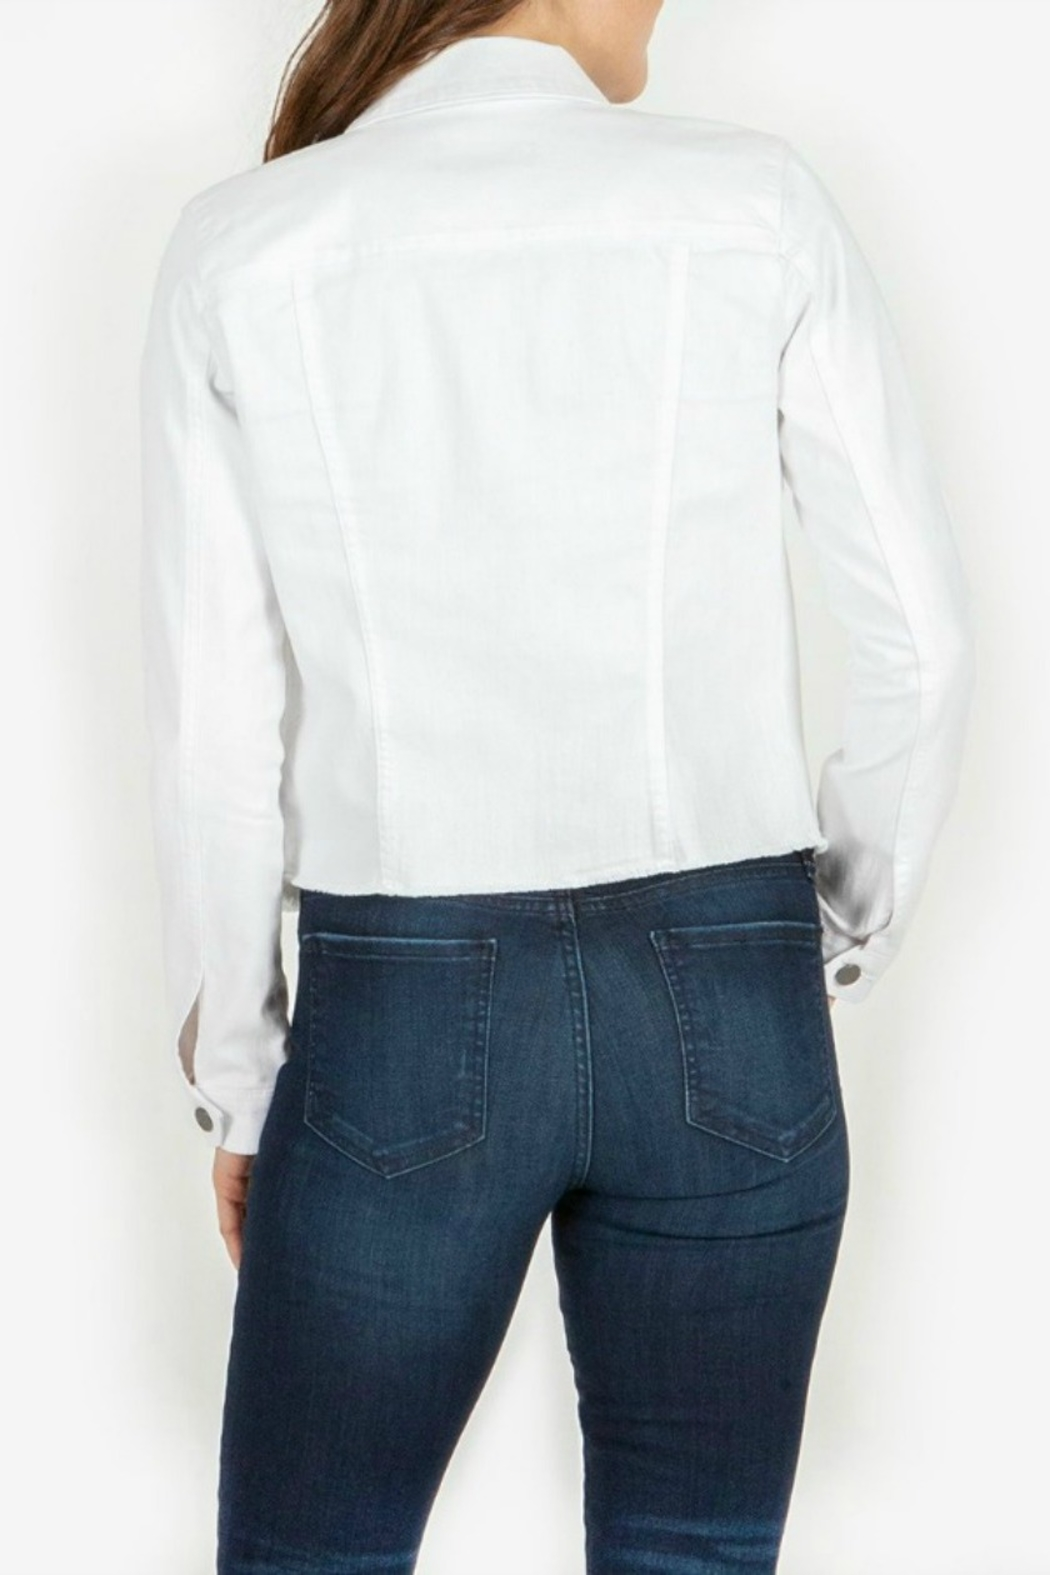 Kut from the Kloth KARA JACKET - Side Cropped Image